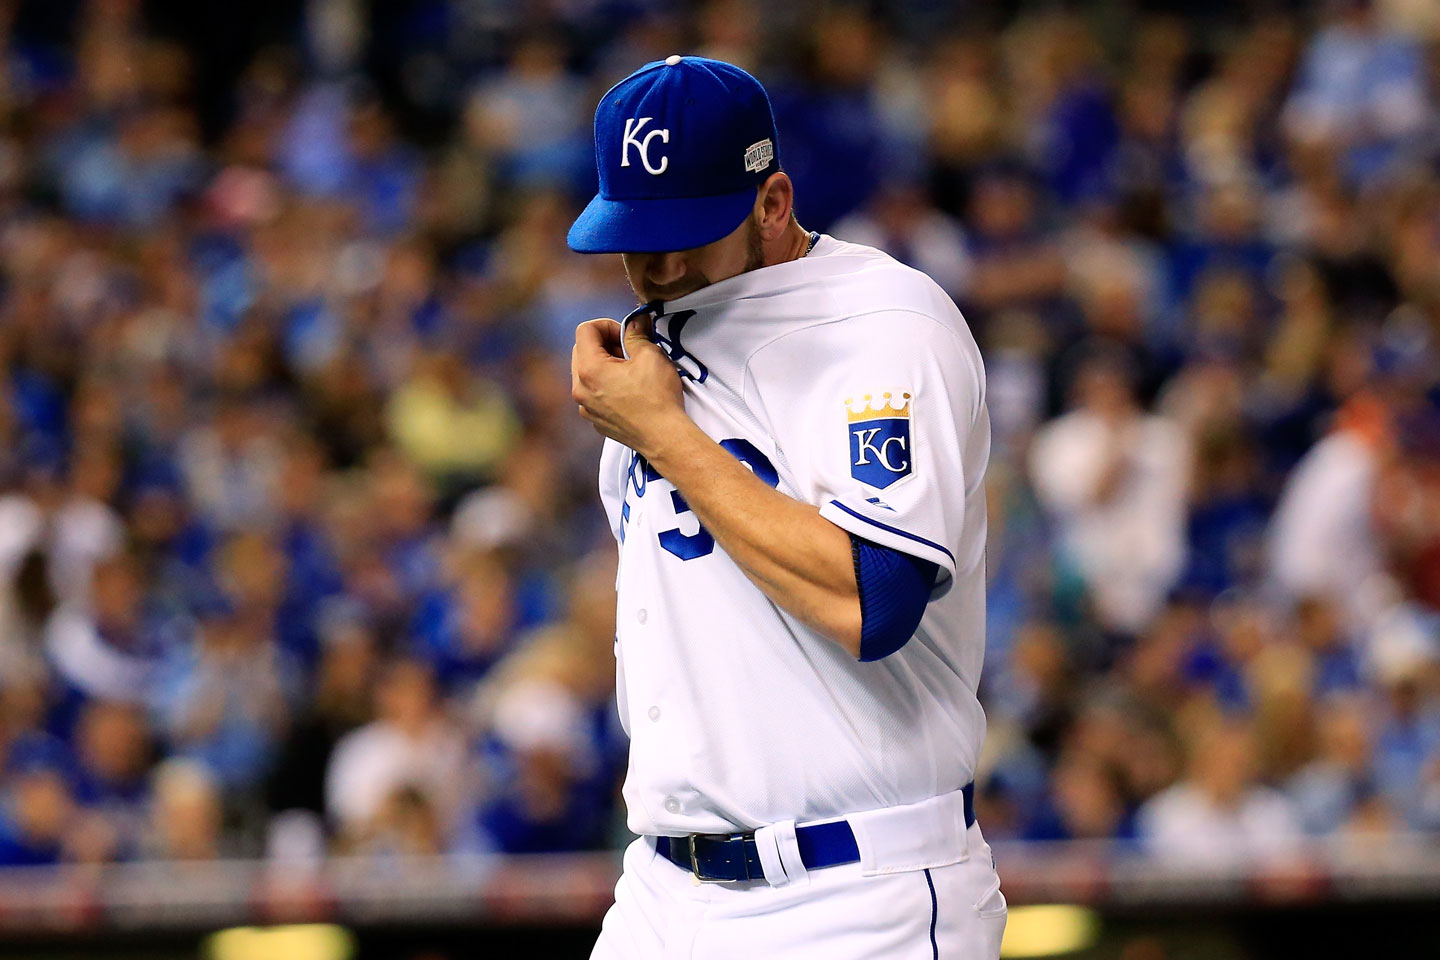 Royals starter James Shields is pulled after allowing the first three Giants to reach base in the top of the fourth -- the final blow being Morse's single to make the score 4-0. Shields was eventually charged with five earned runs on seven hits in just three complete innings.   (Rob Carr/Getty Images)